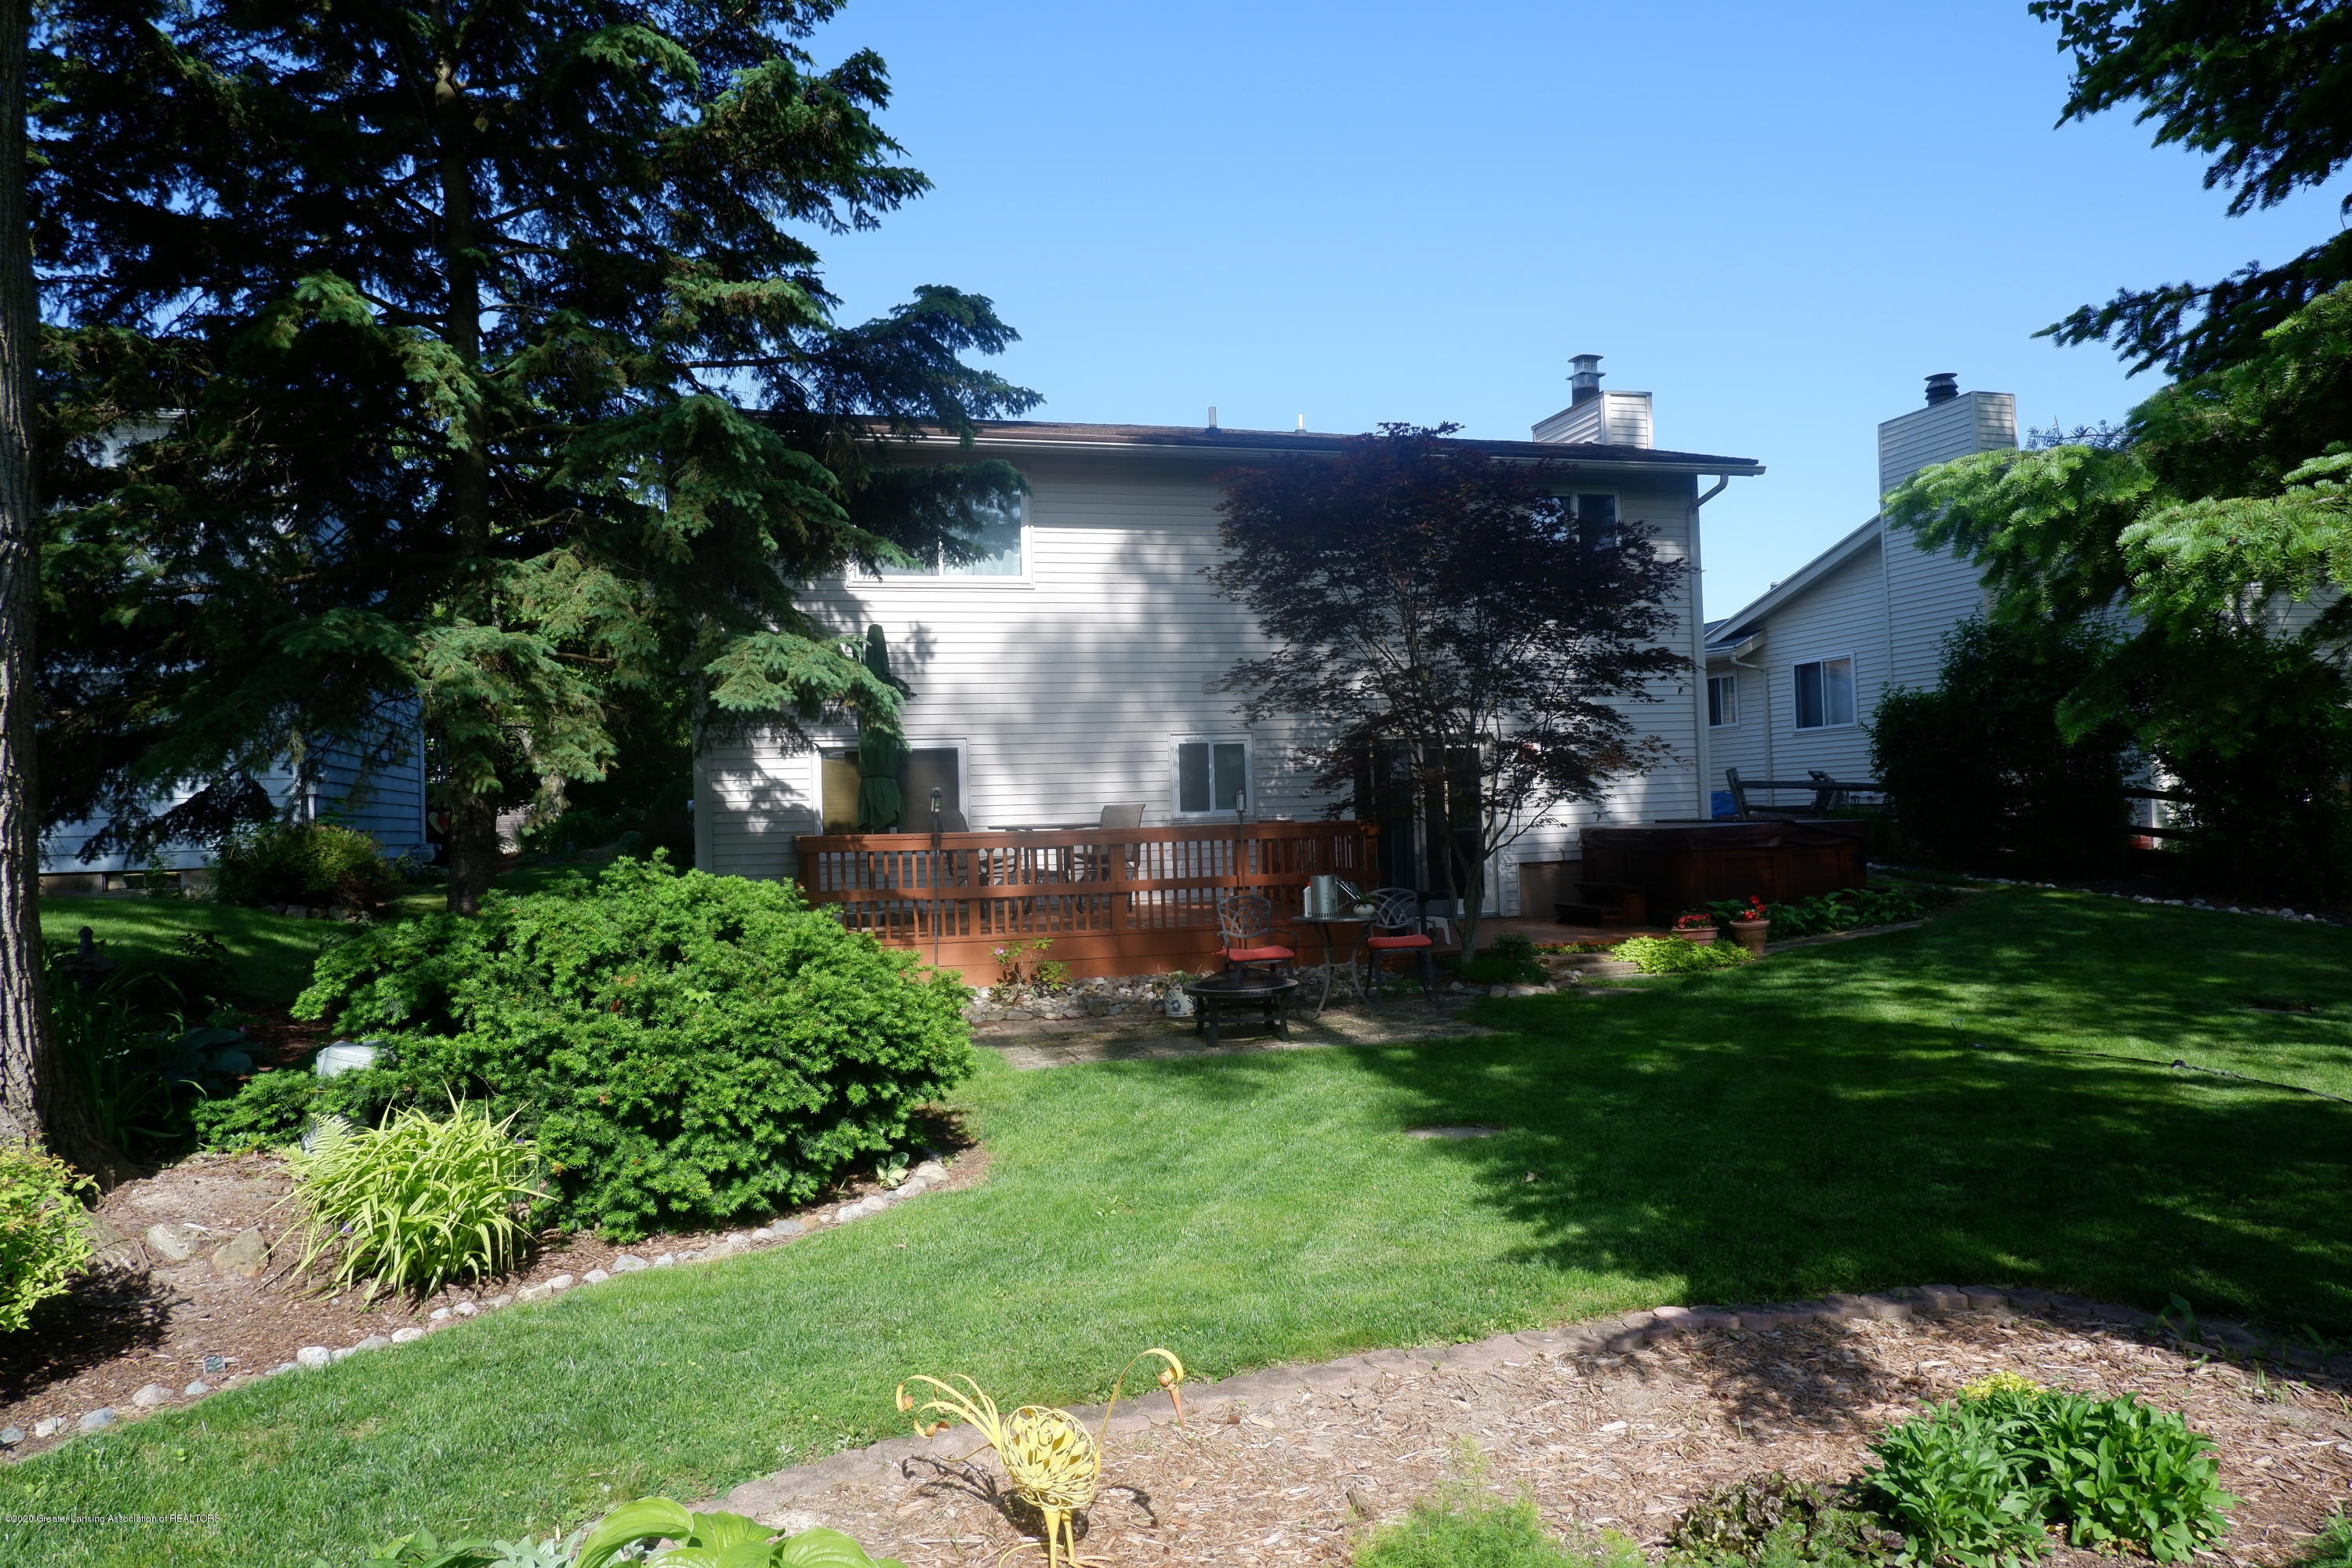 968 Touraine Ave - Rear view of house - 4